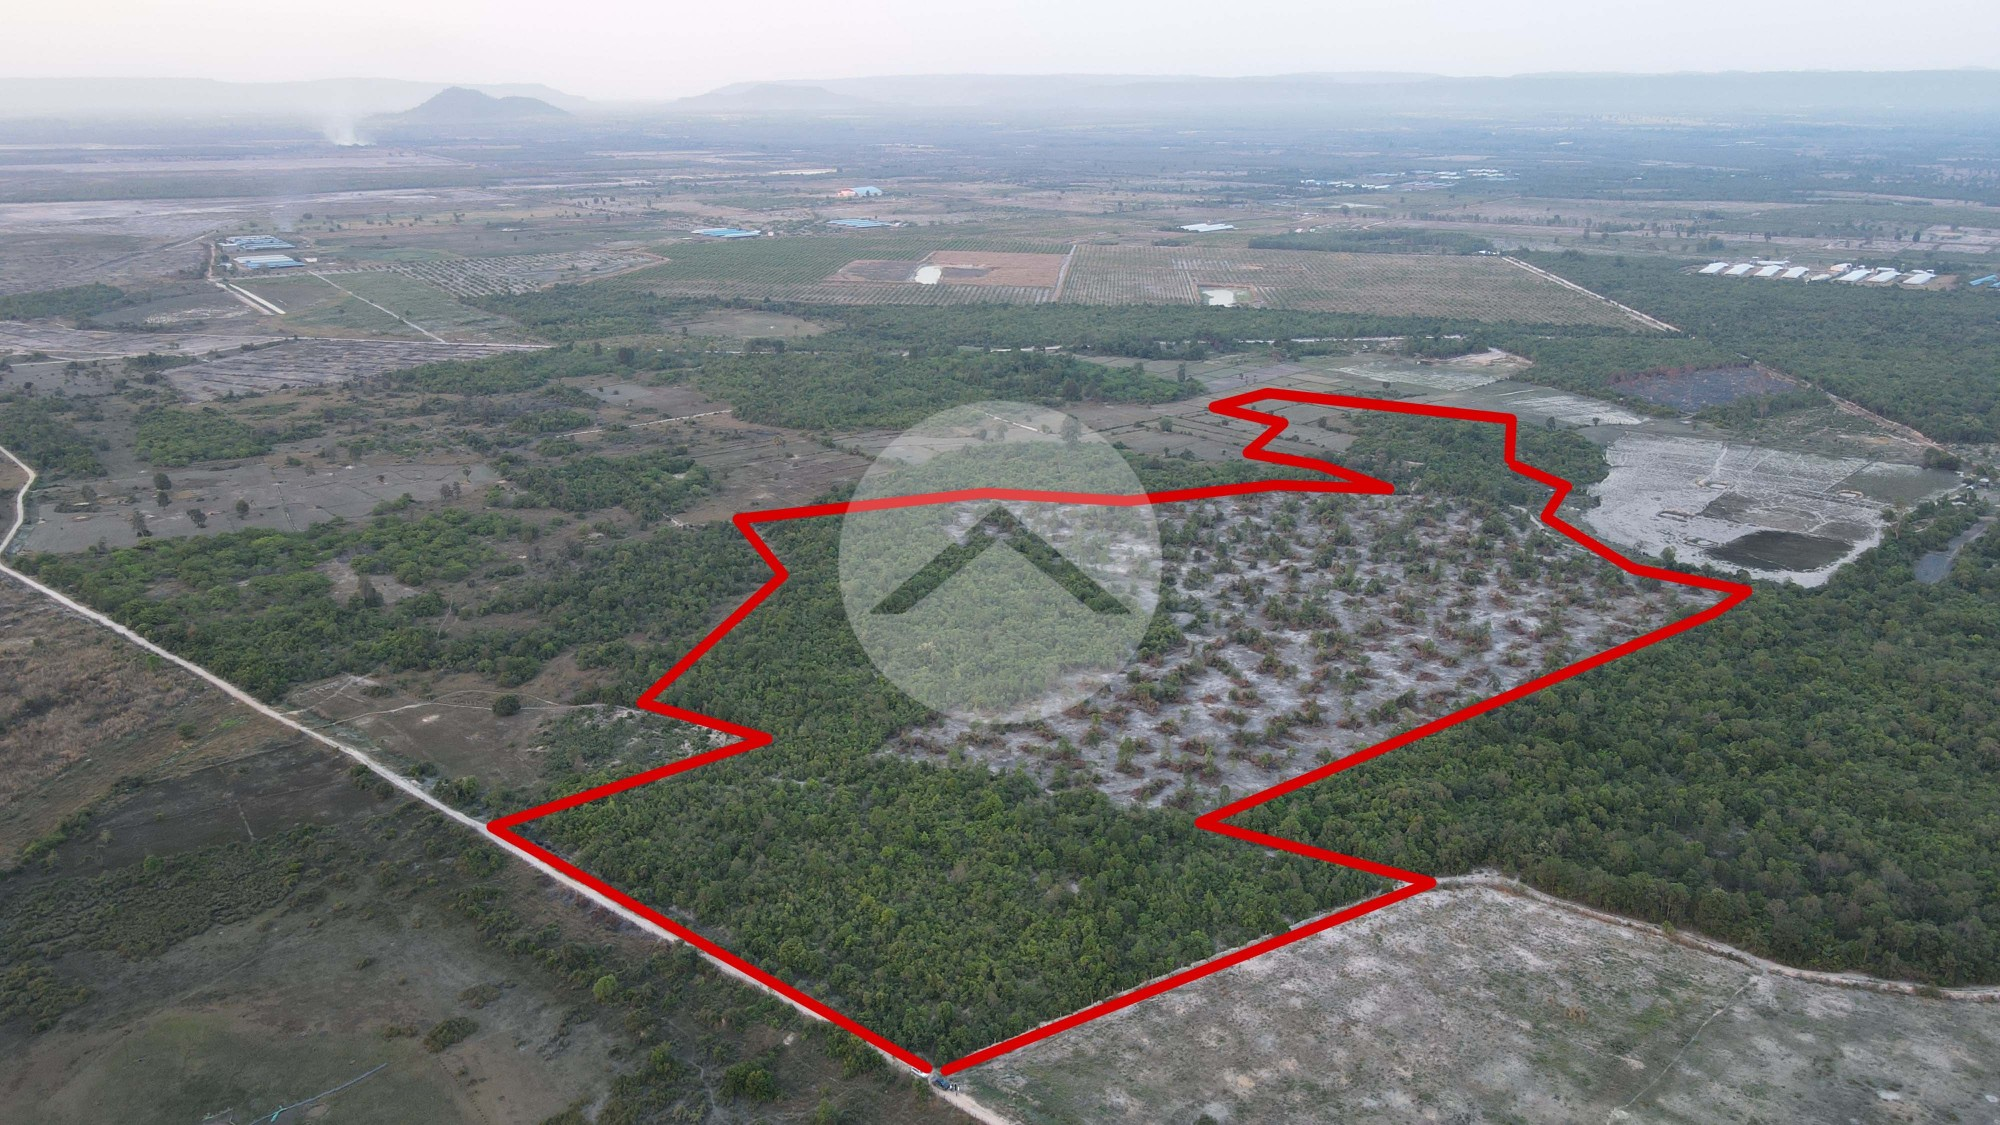 18 Hectare Land For Sale - Banteay Srei, Siem Reap